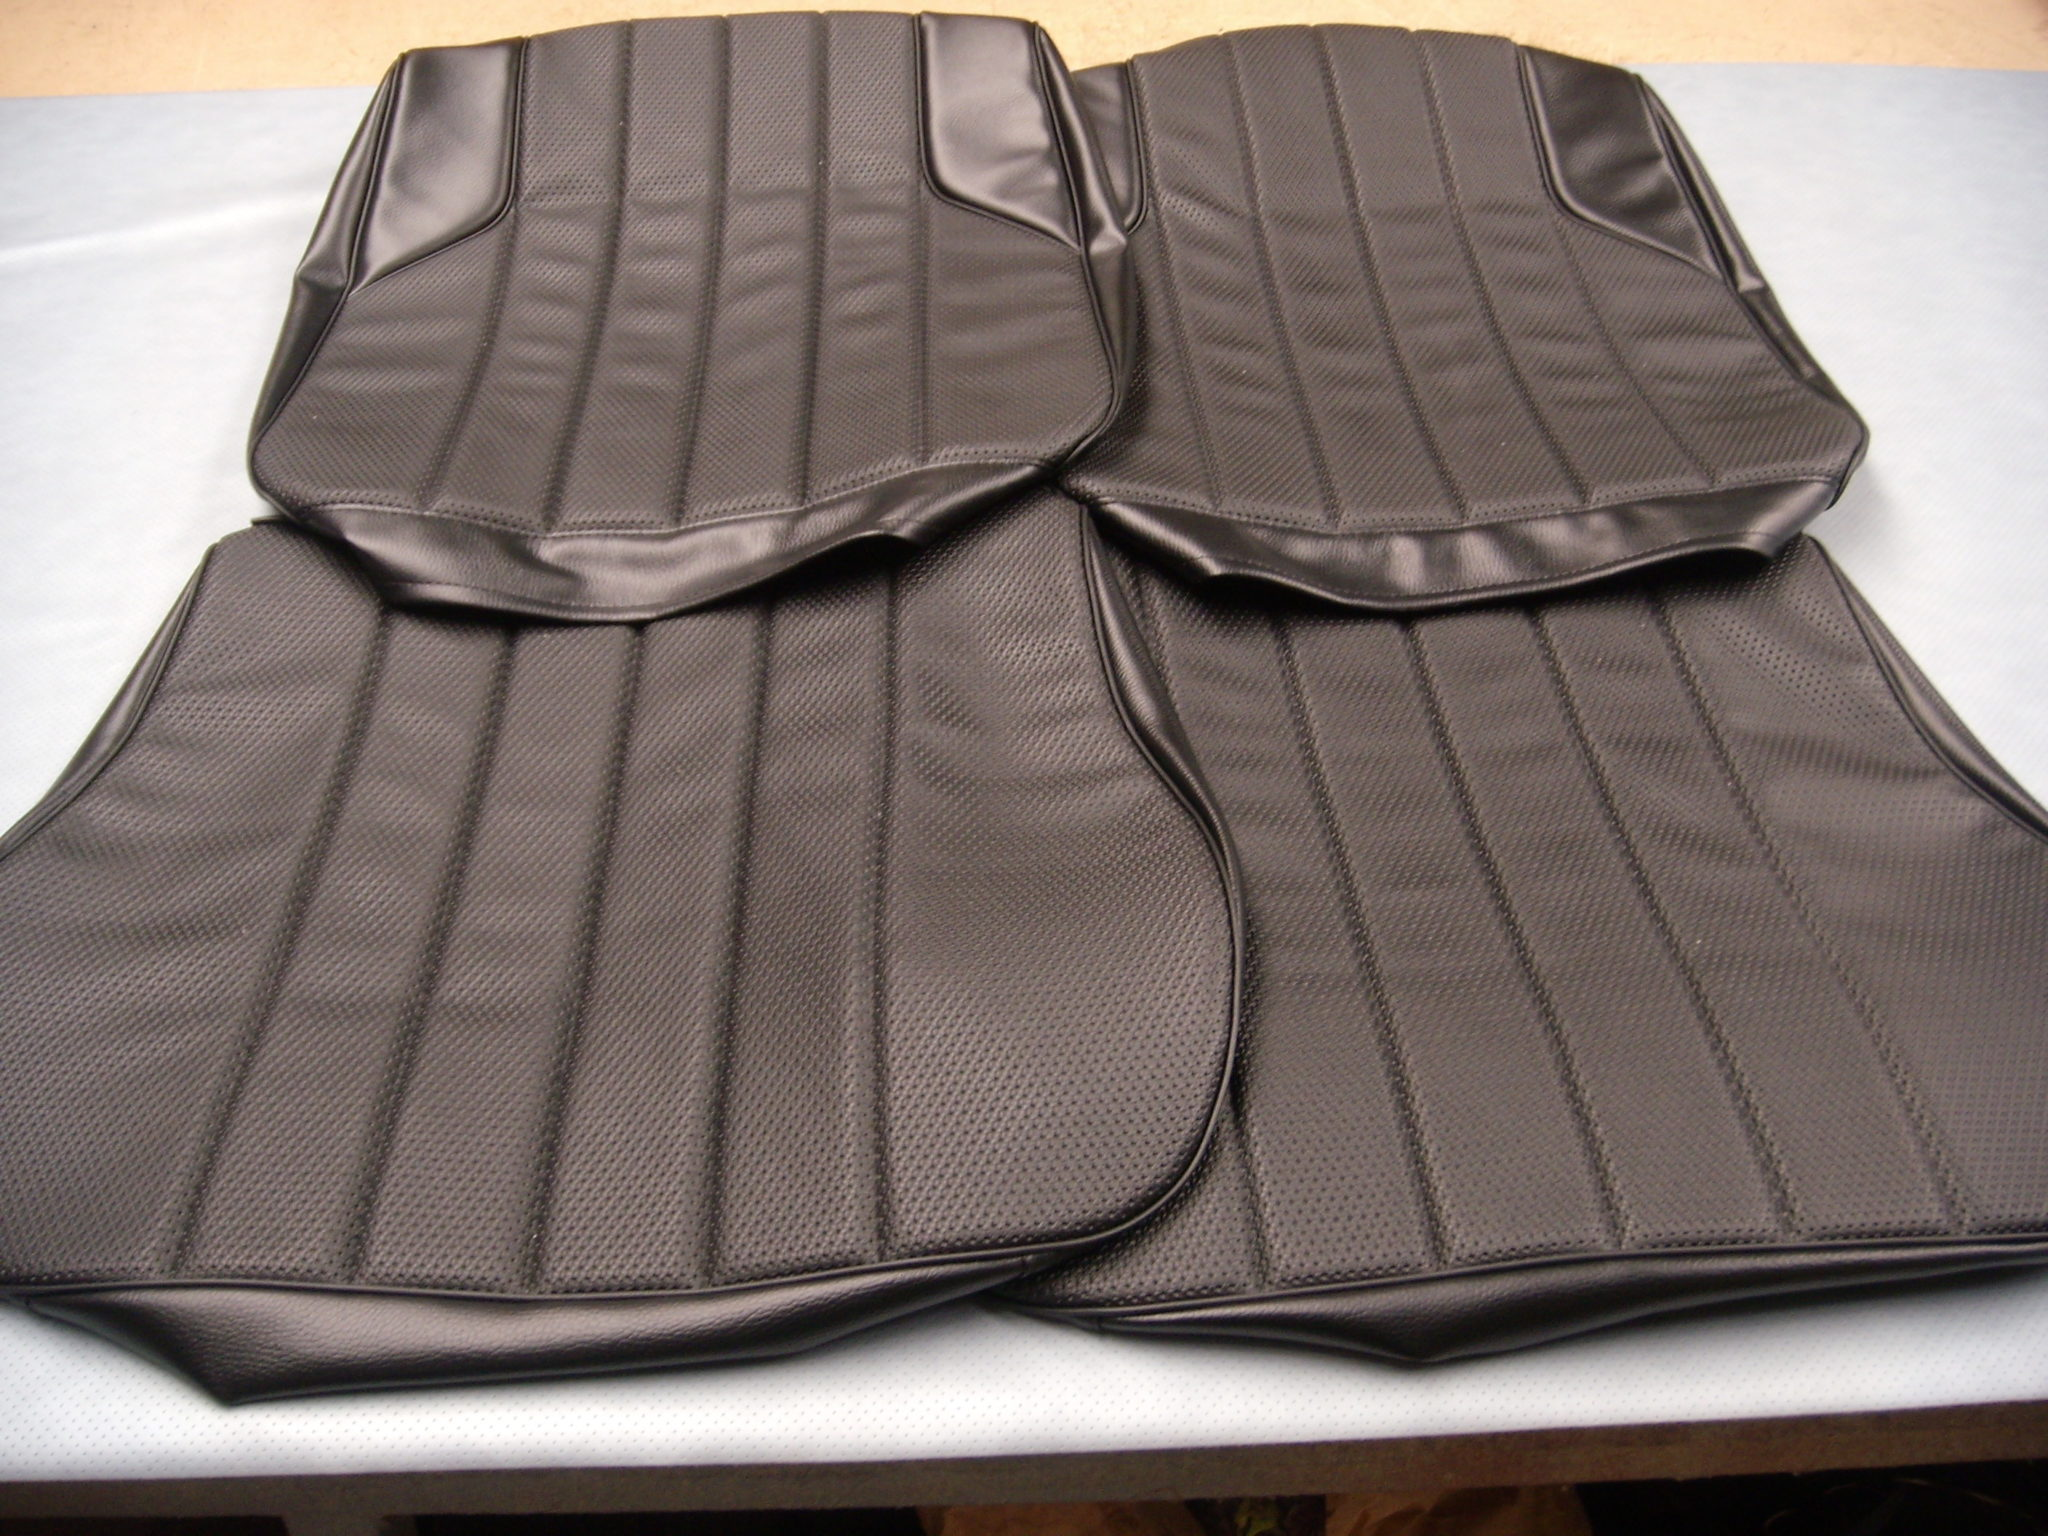 Marvelous photograph of HOLDEN HT MONARO SEAT COVER SET BLACK – SuperTrim Coburg Motor  with #9B6830 color and 2816x2112 pixels